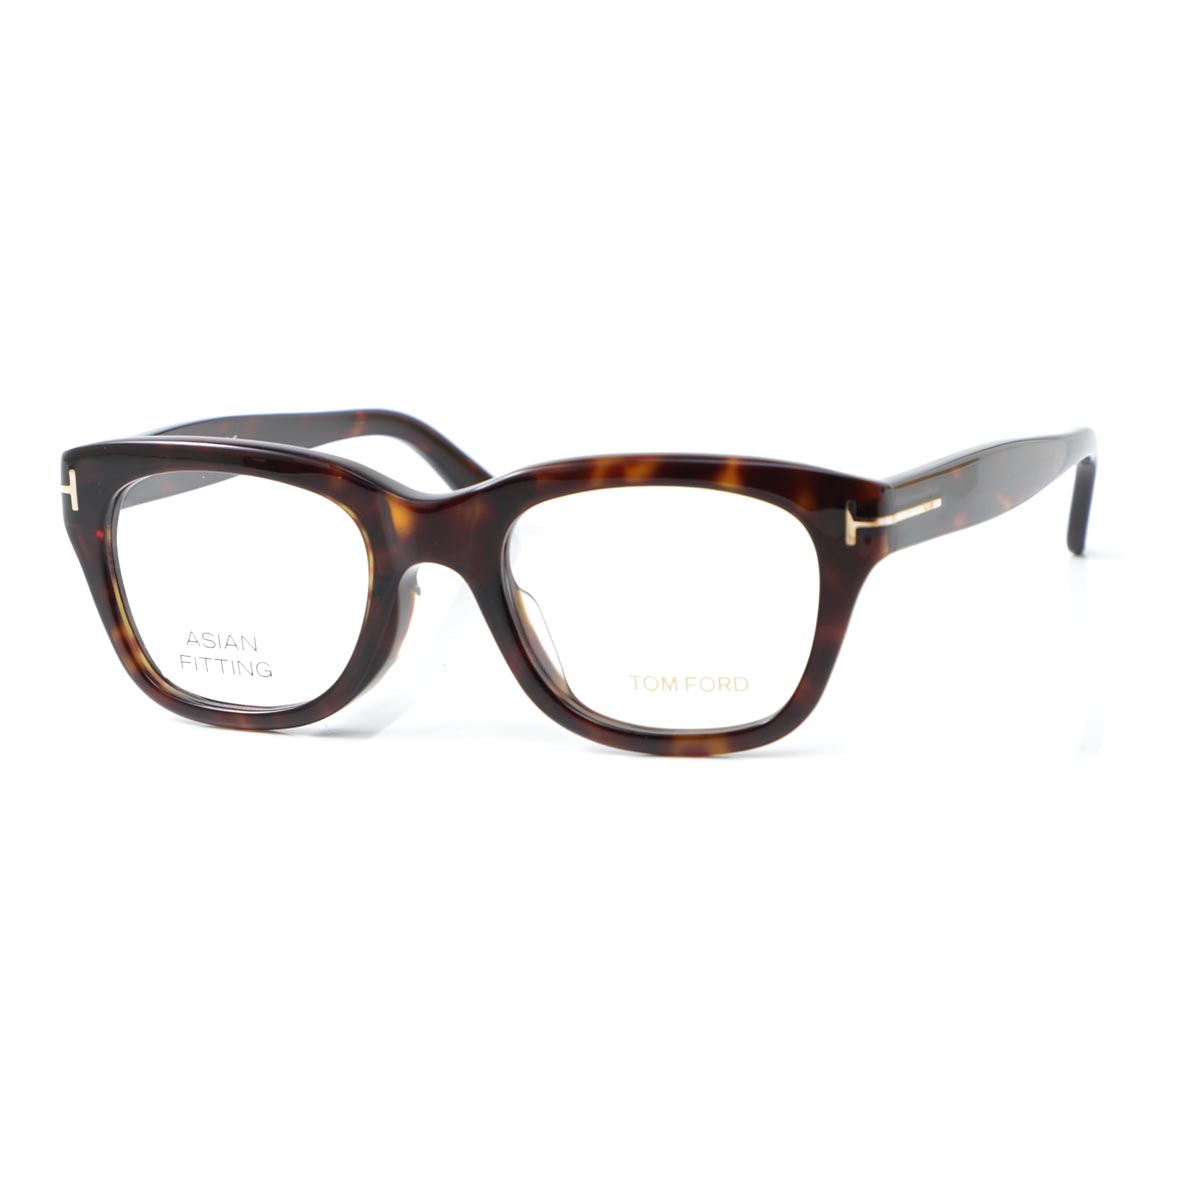 4a6cf871d03a Tom Ford TOM FORD glasses glasses frame brown men gap Dis brown ft5178 052 CLASSIC  SOFT SQUARE square